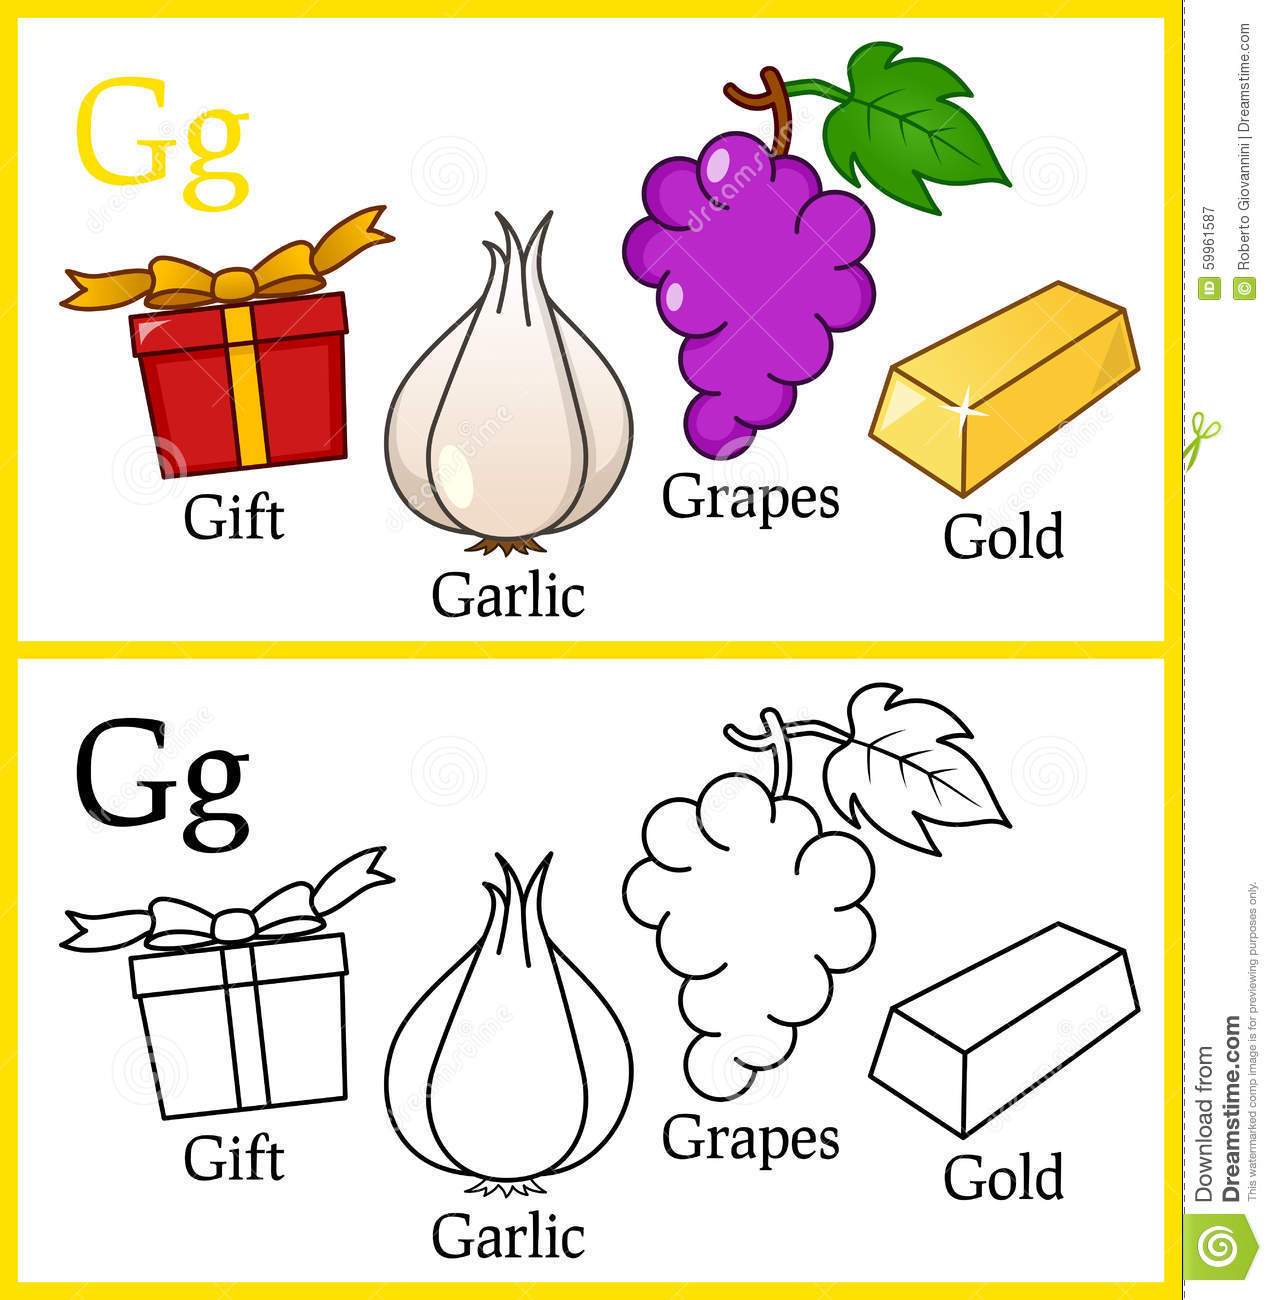 coloring book for children alphabet g royalty free stock photography - Coloring Book For Children